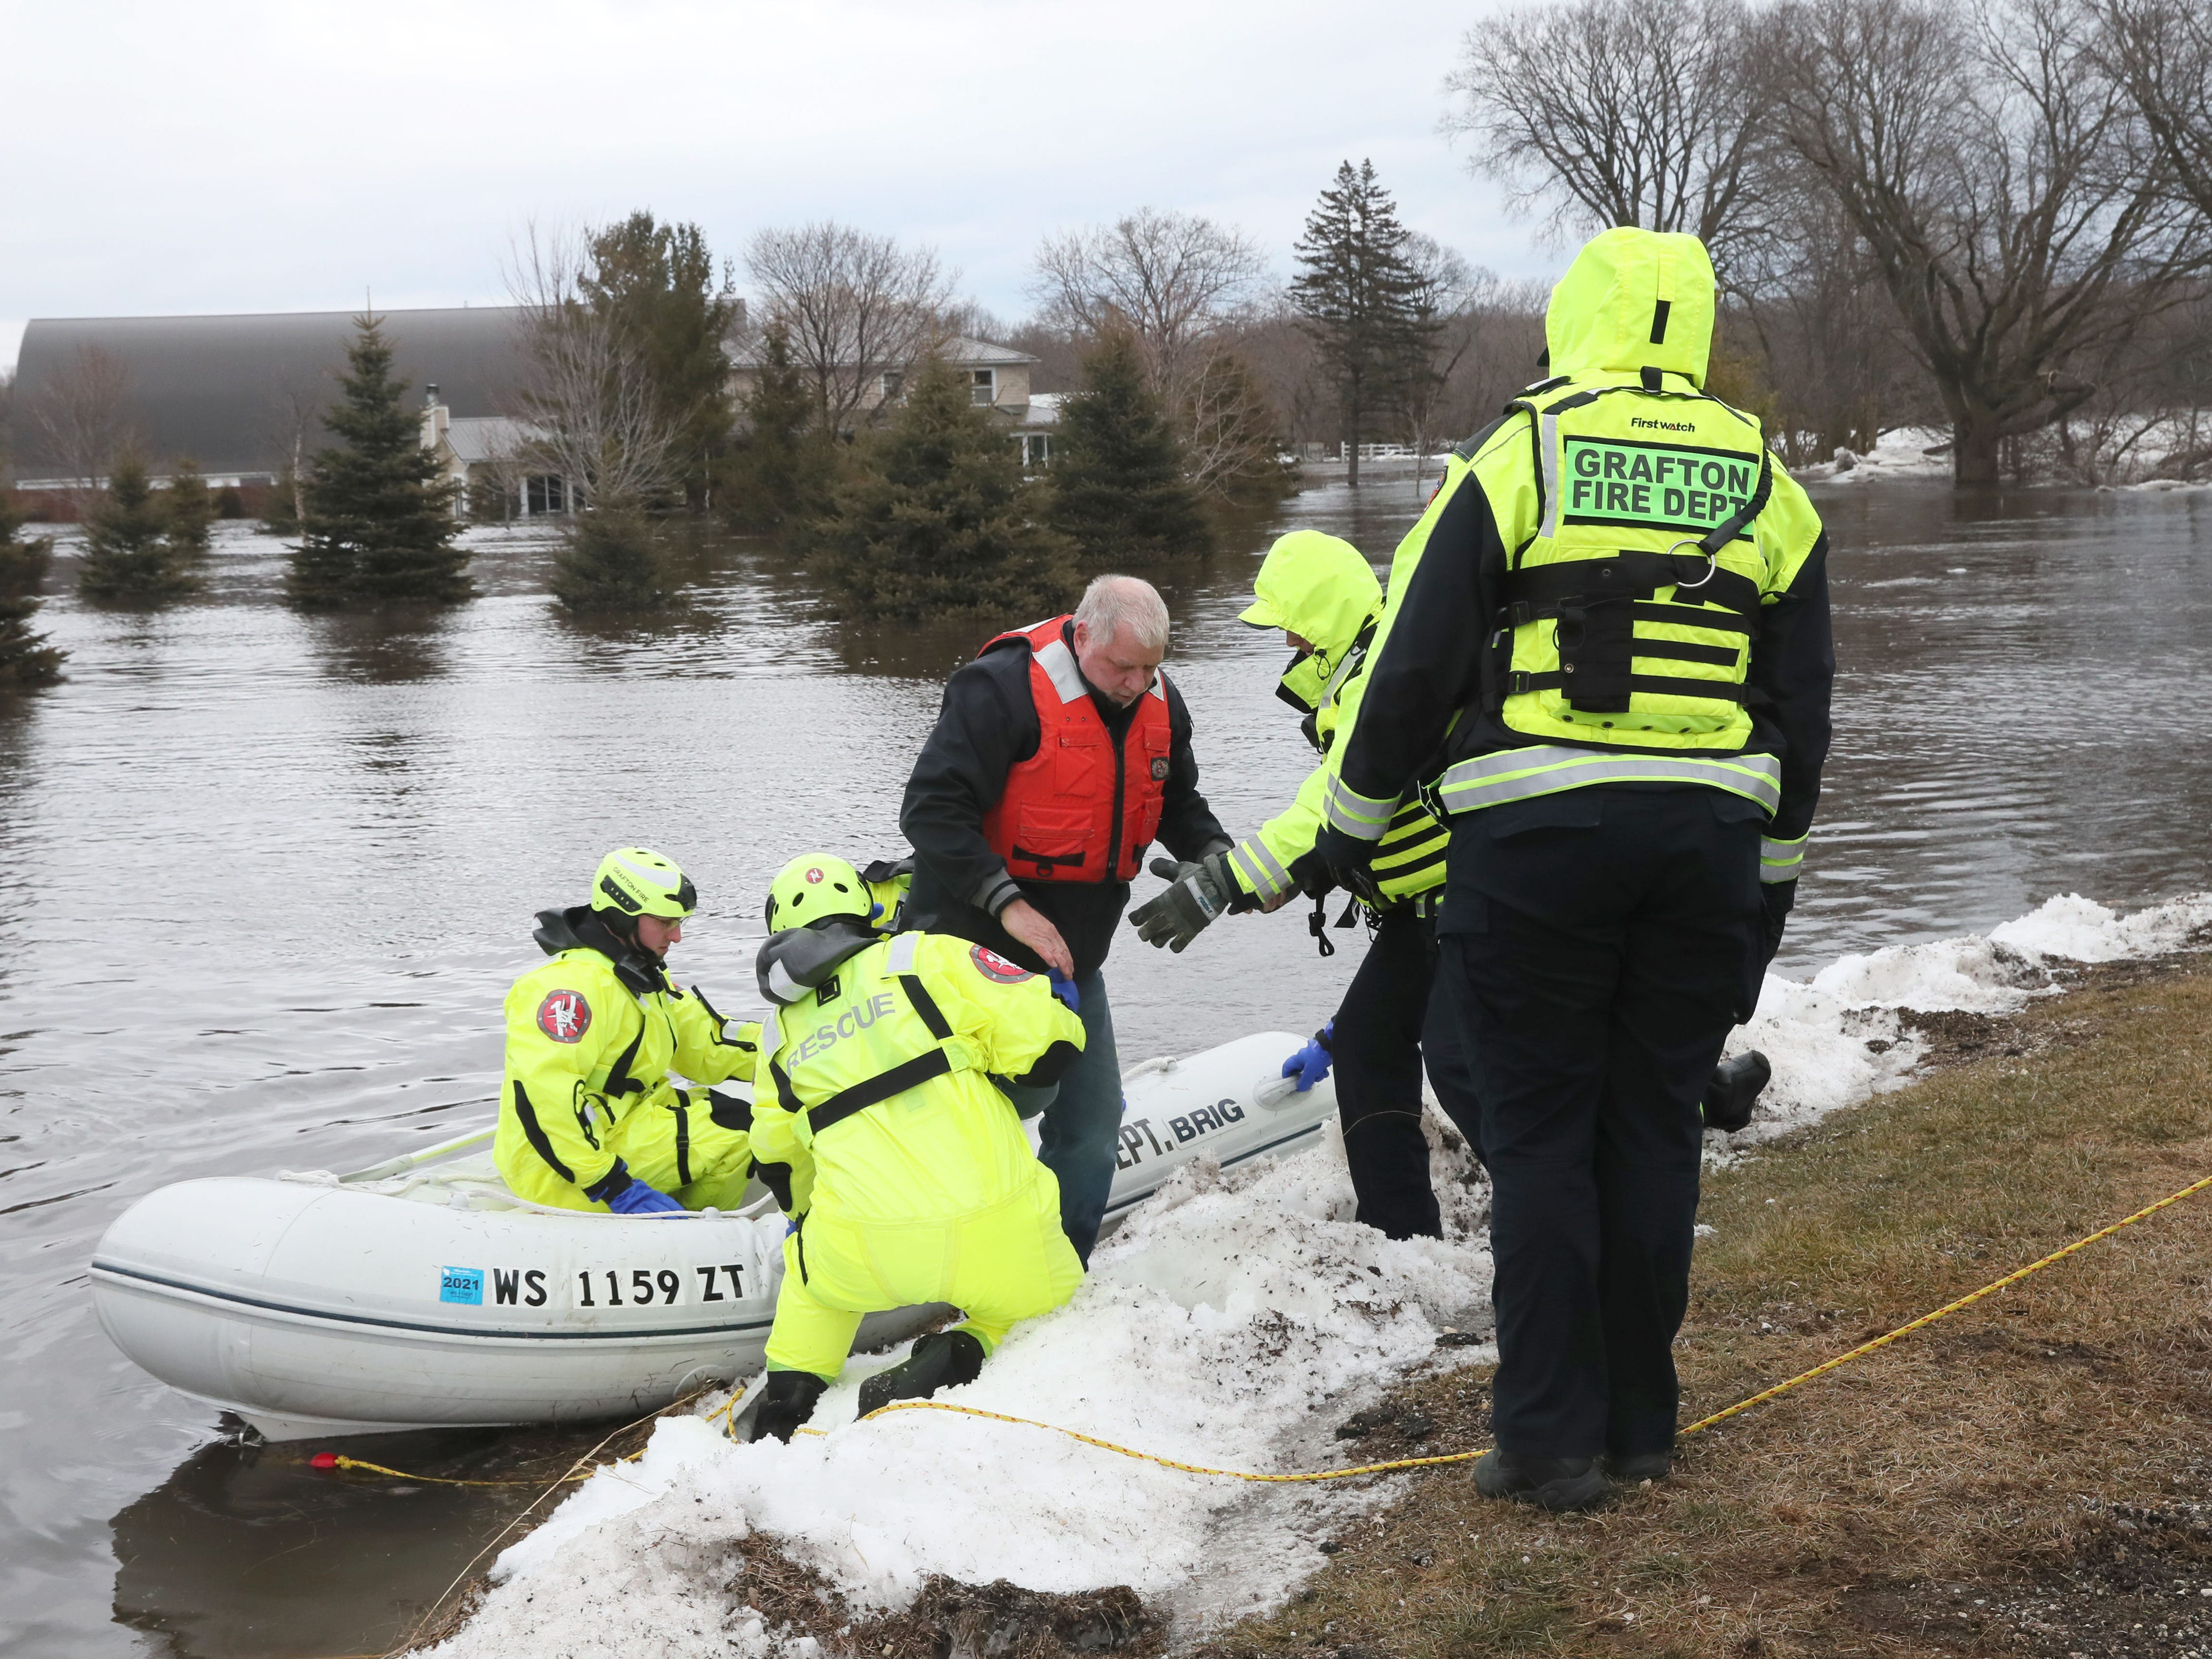 Grafton firefighters help a man out of their boat that they brought to dry land from his home at the Riverview Kennel property. March 15, 2019 Grafton firefighters rescued two people from the Riverview Kennel on the Milwaukee River at  1584 Pioneer Rd in Cedarburg.  Ice going out on the river was blocked by bridge diverting flow over the Cty Highway C and the surround low areas.